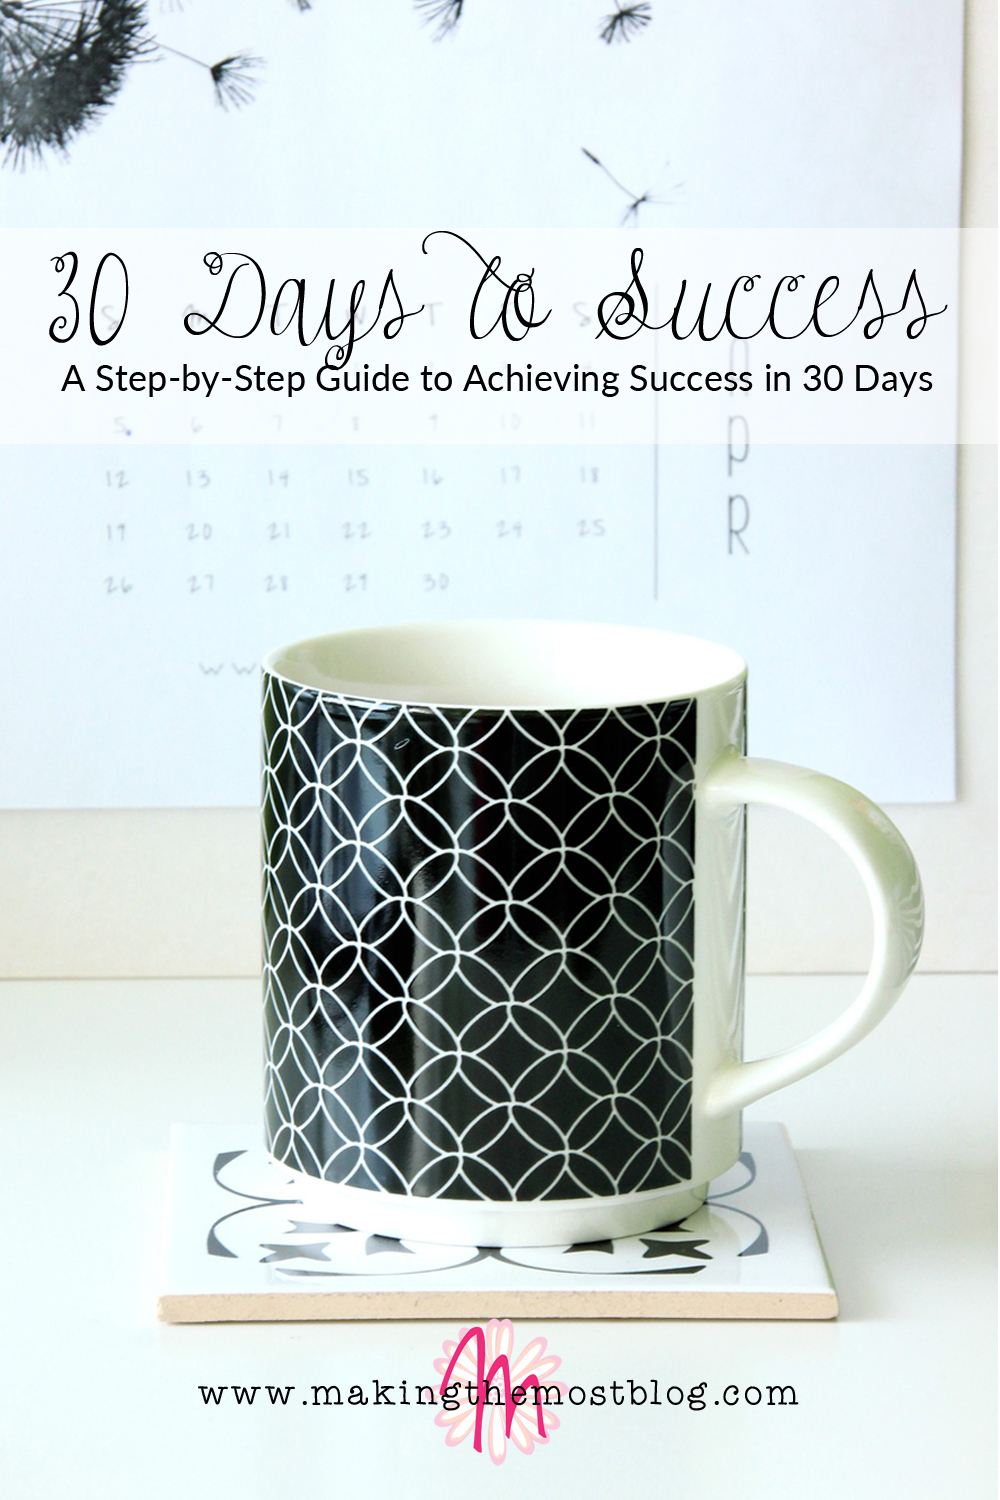 30 Days to Success: A Step-by-Step Guide to Achieving Success in 30 Days | Making the Most Blog